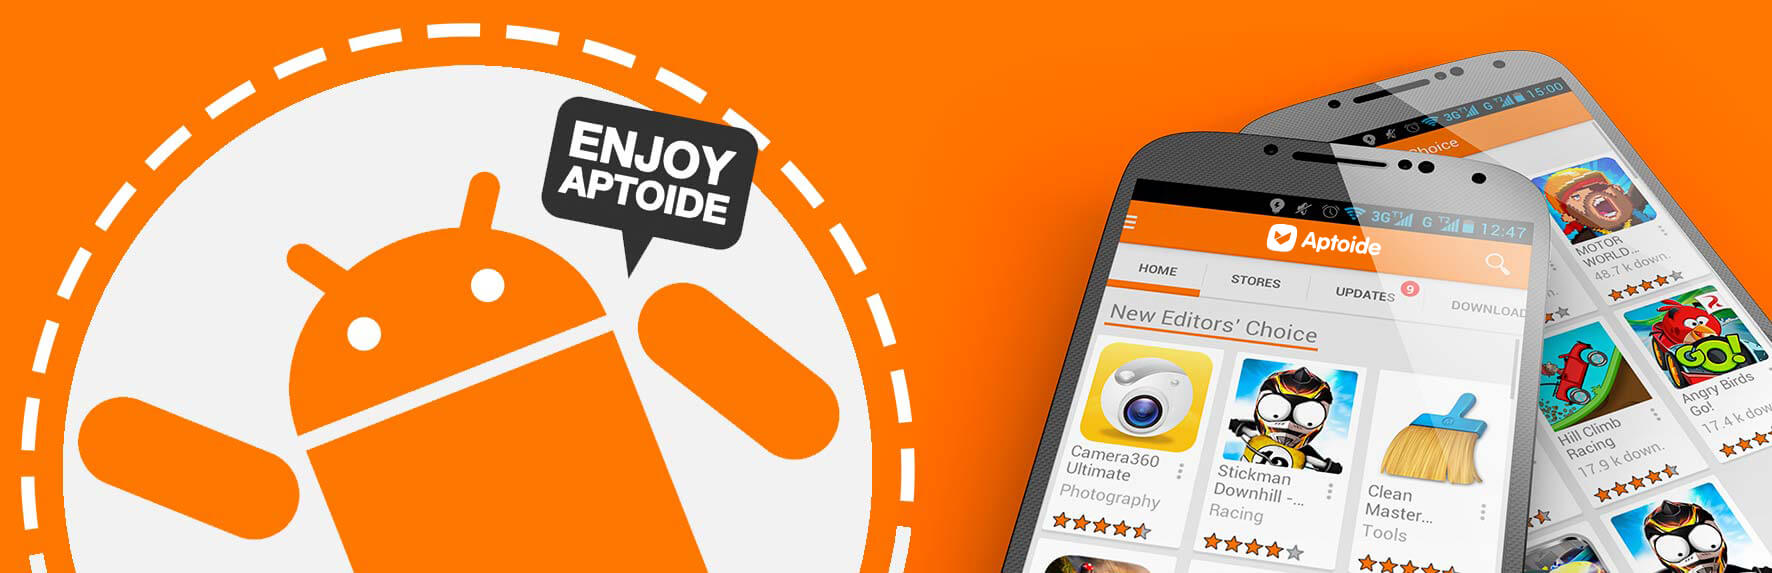 http://cdn4.aptoide.com/includes/themes/mobile2014/images/about.jpg